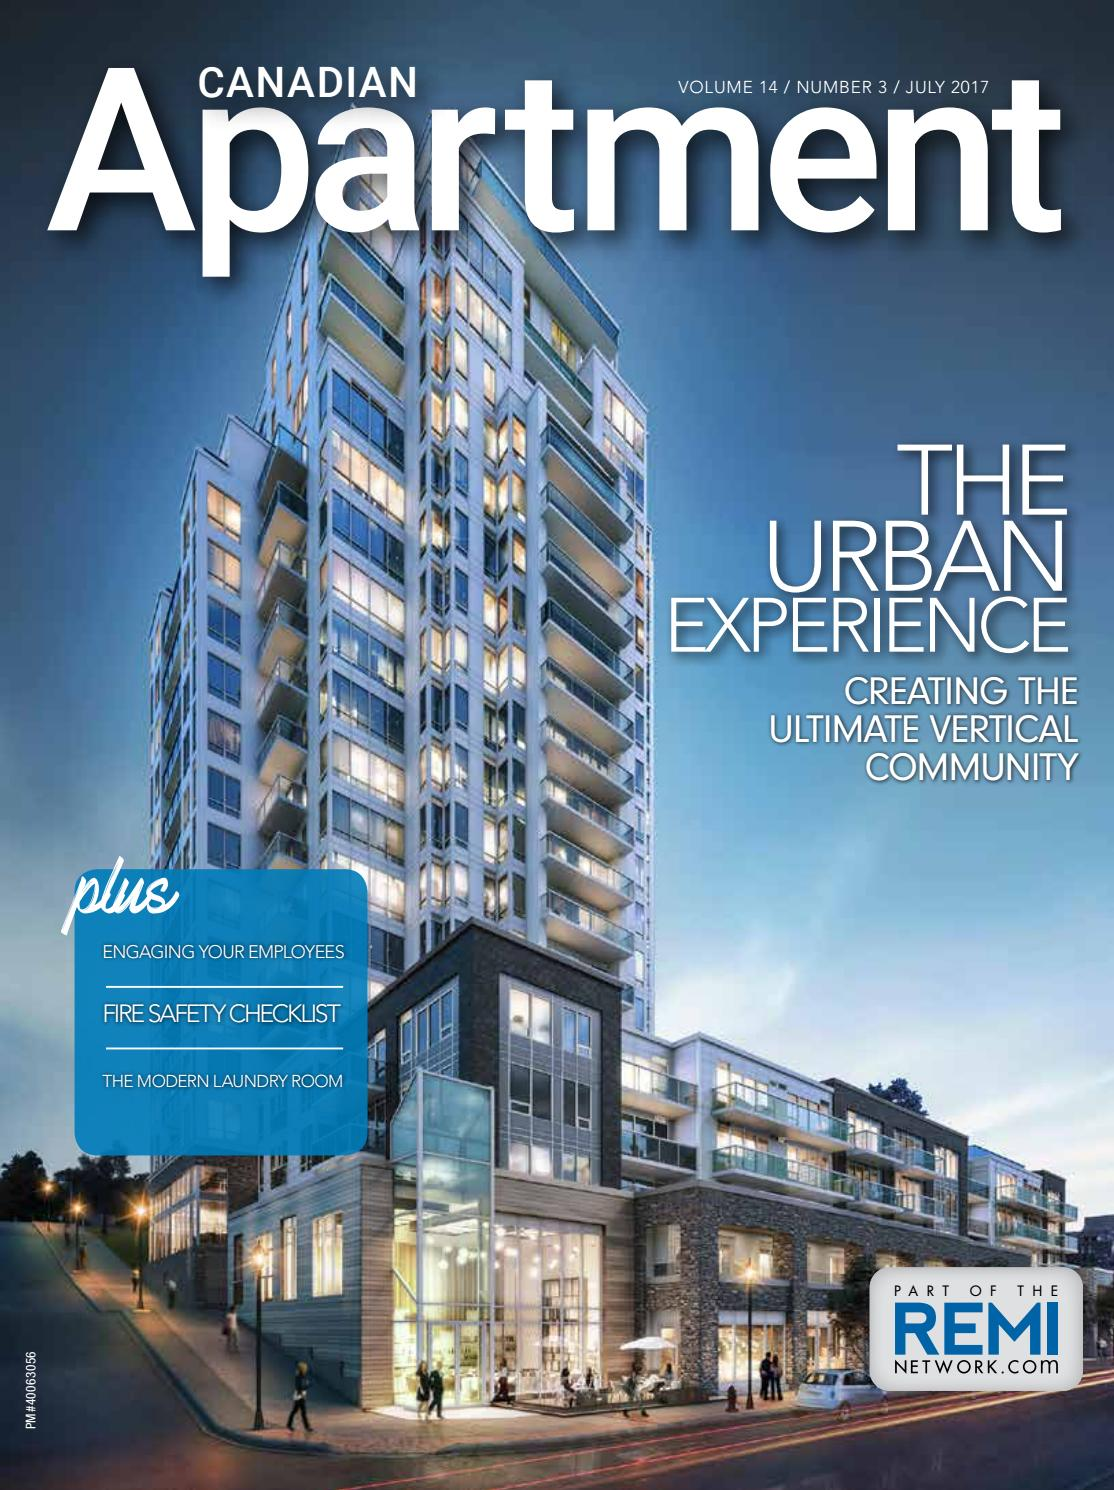 Canadian Apartment Magazine by MediaEdge - issuu